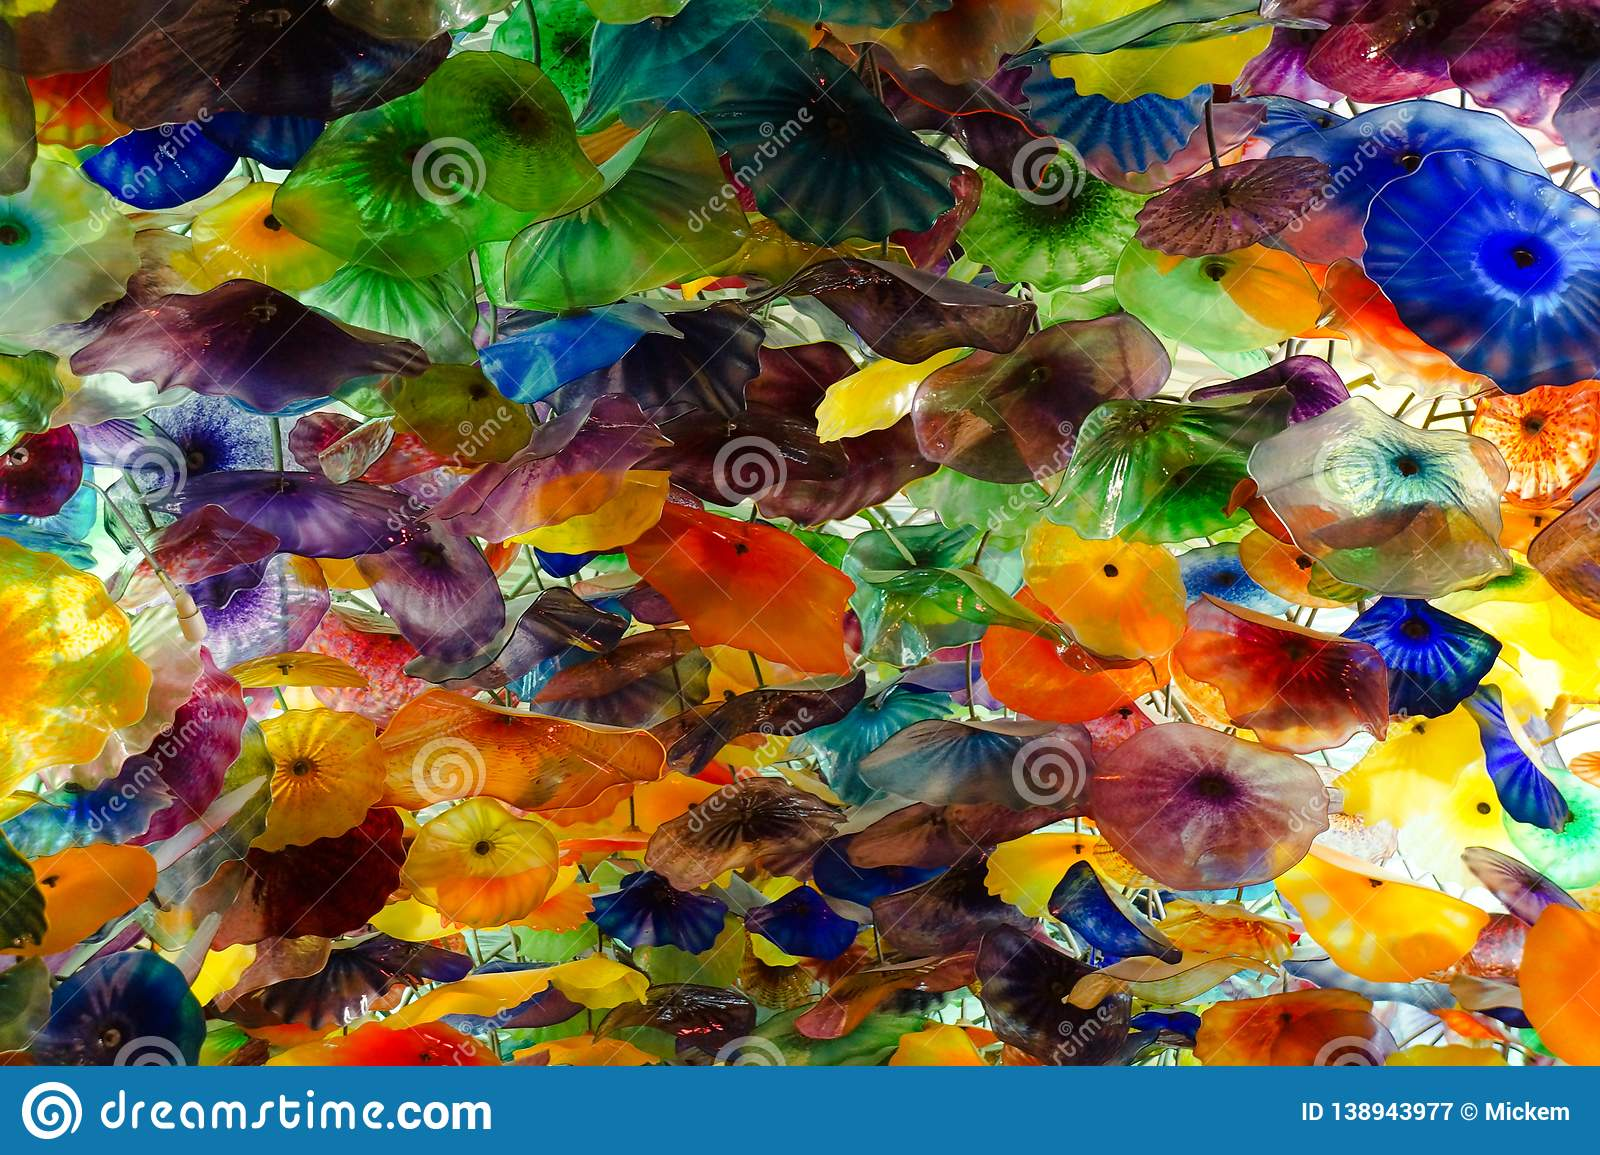 Chihuly Glass Ceiling Art Display Editorial Photography